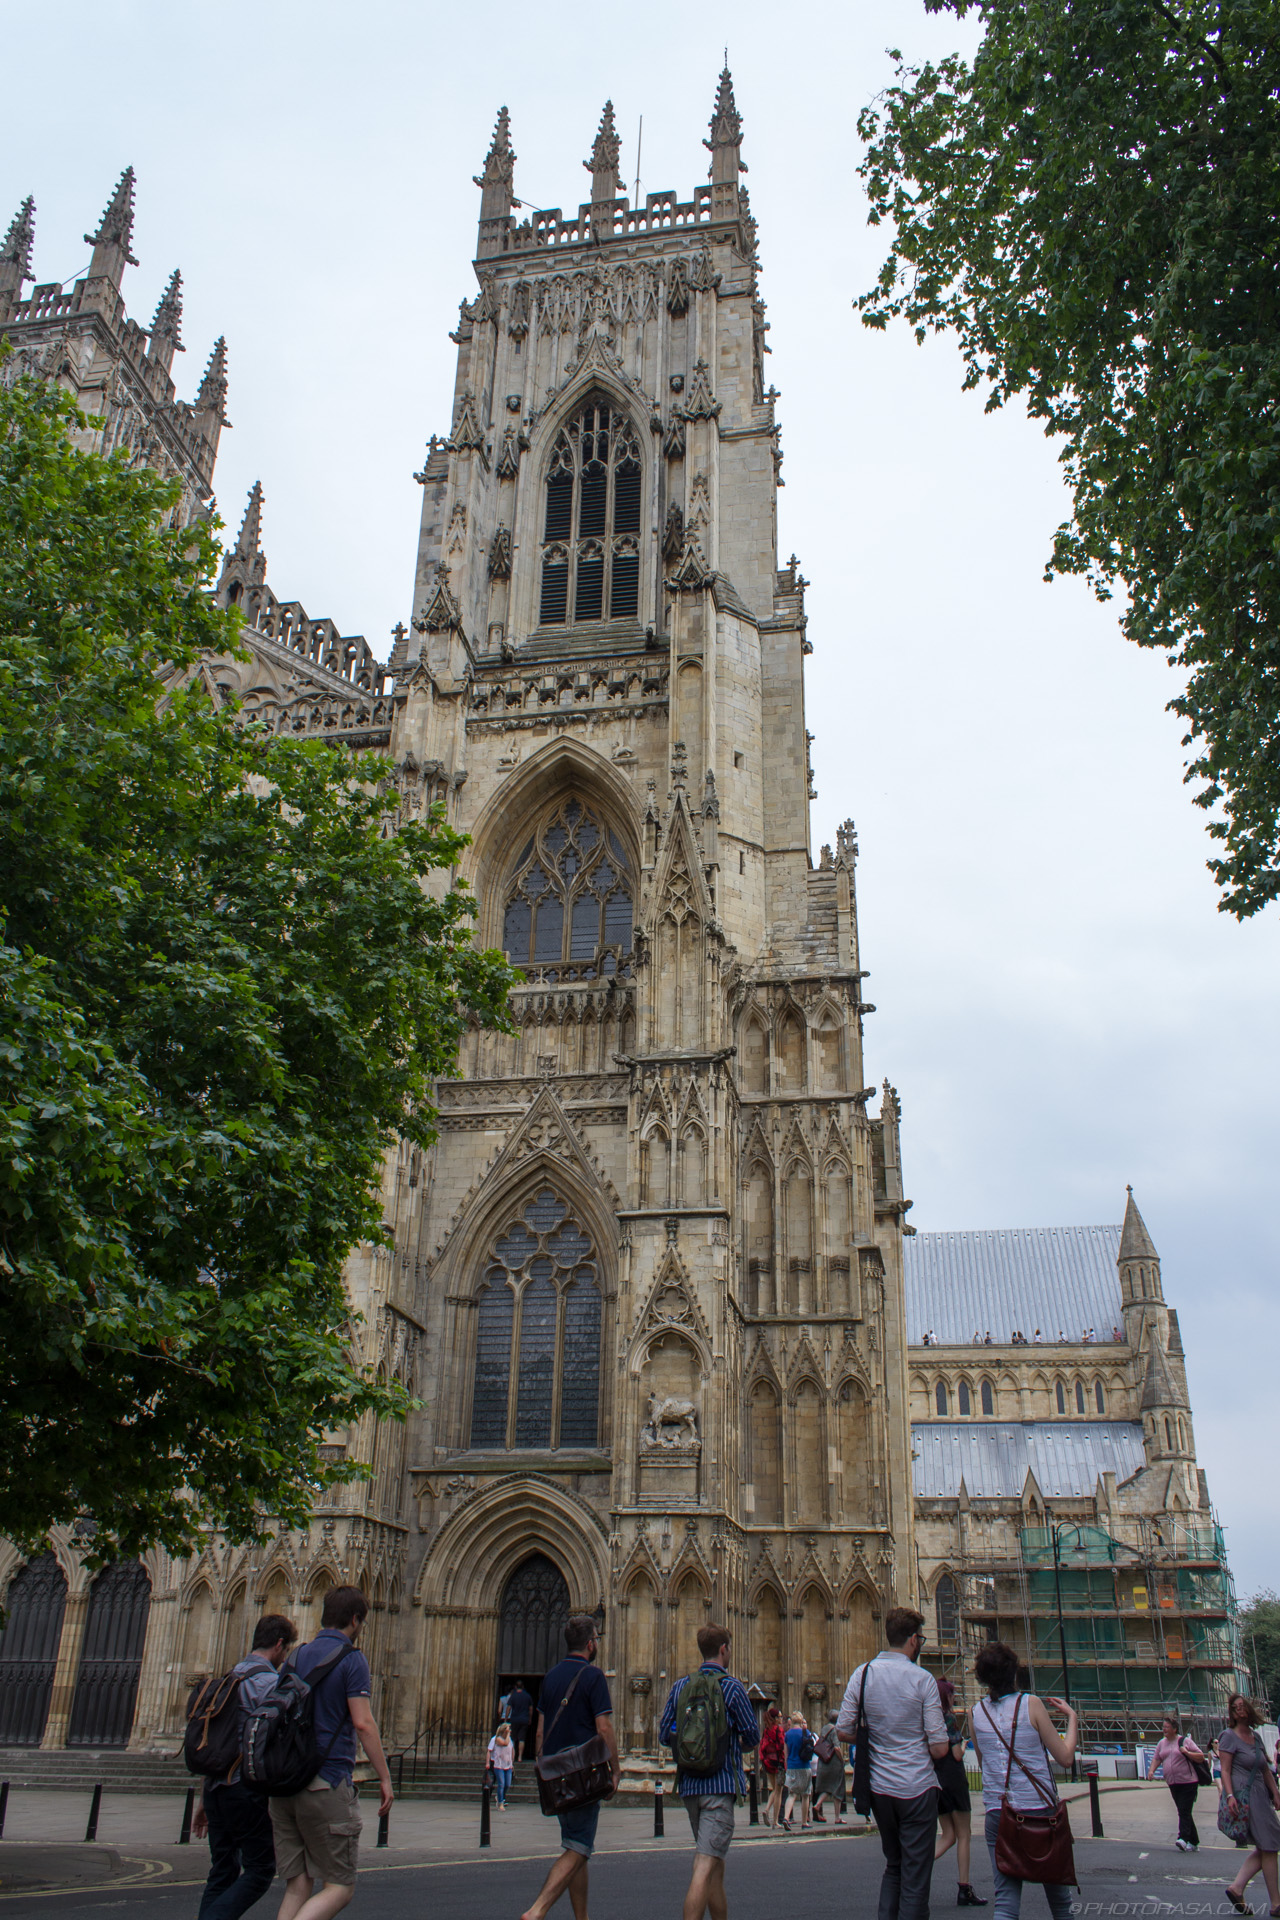 https://photorasa.com/yorkminster-cathedral/york-minster-cathedral-west-tower/